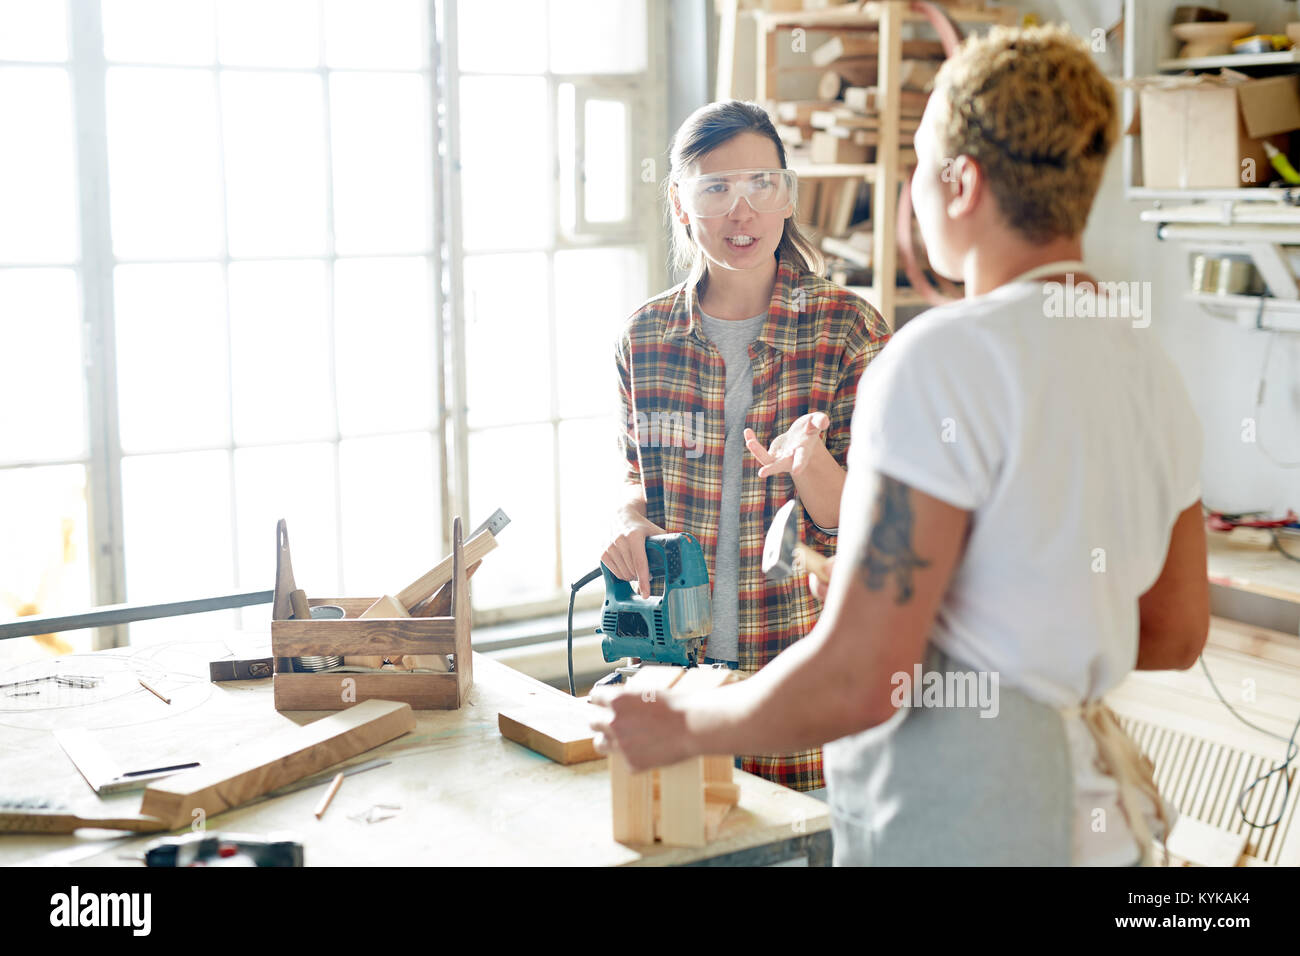 Talk at work - Stock Image